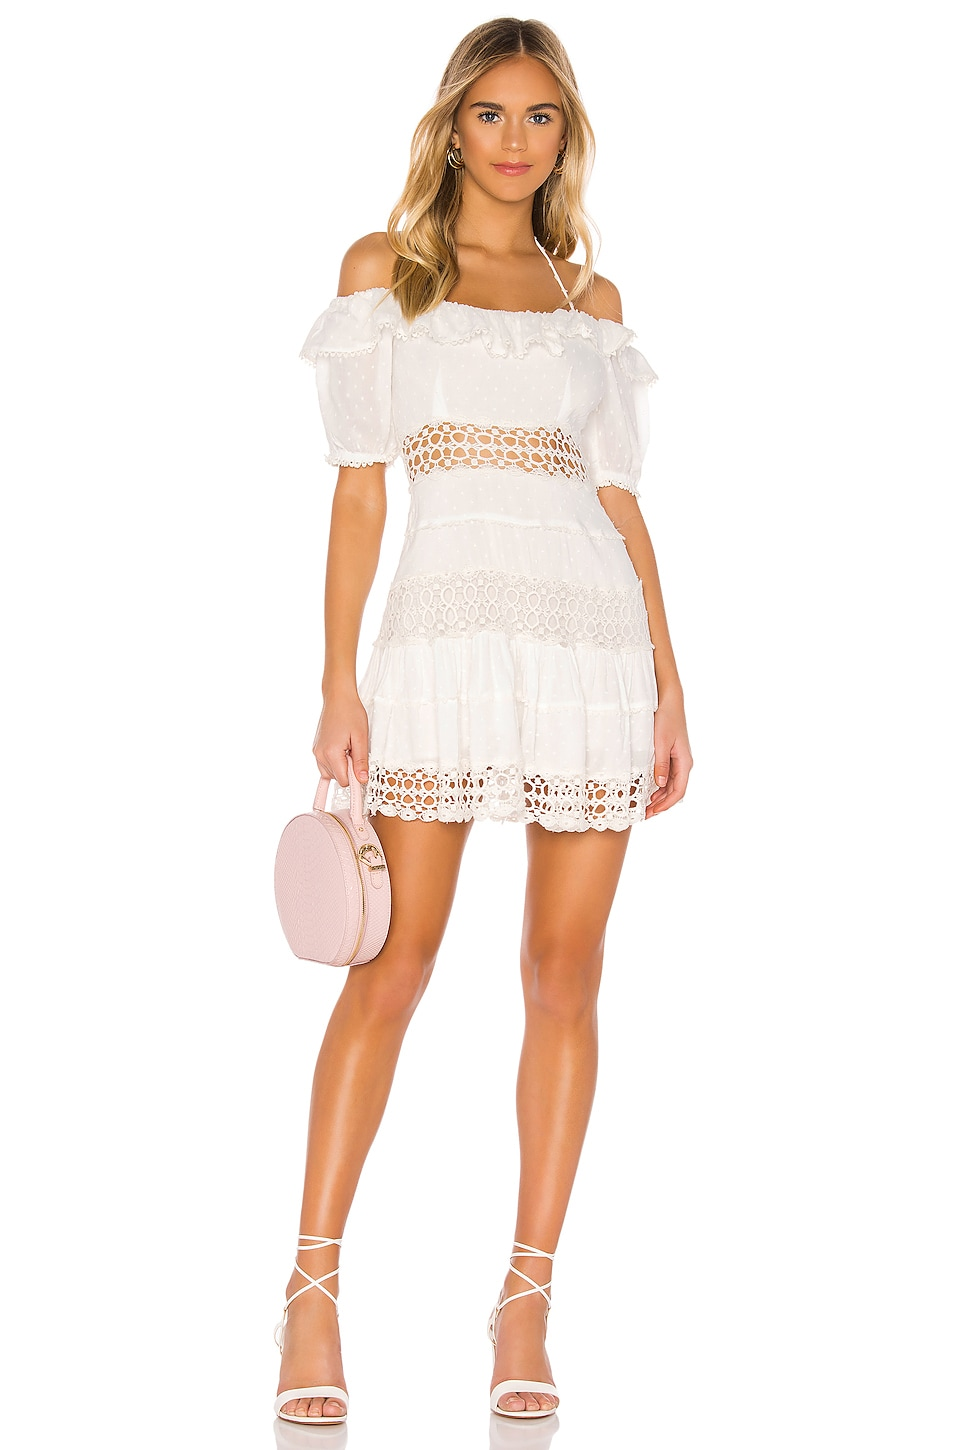 Free People Cruel Intentions Mini Dress in Ivory